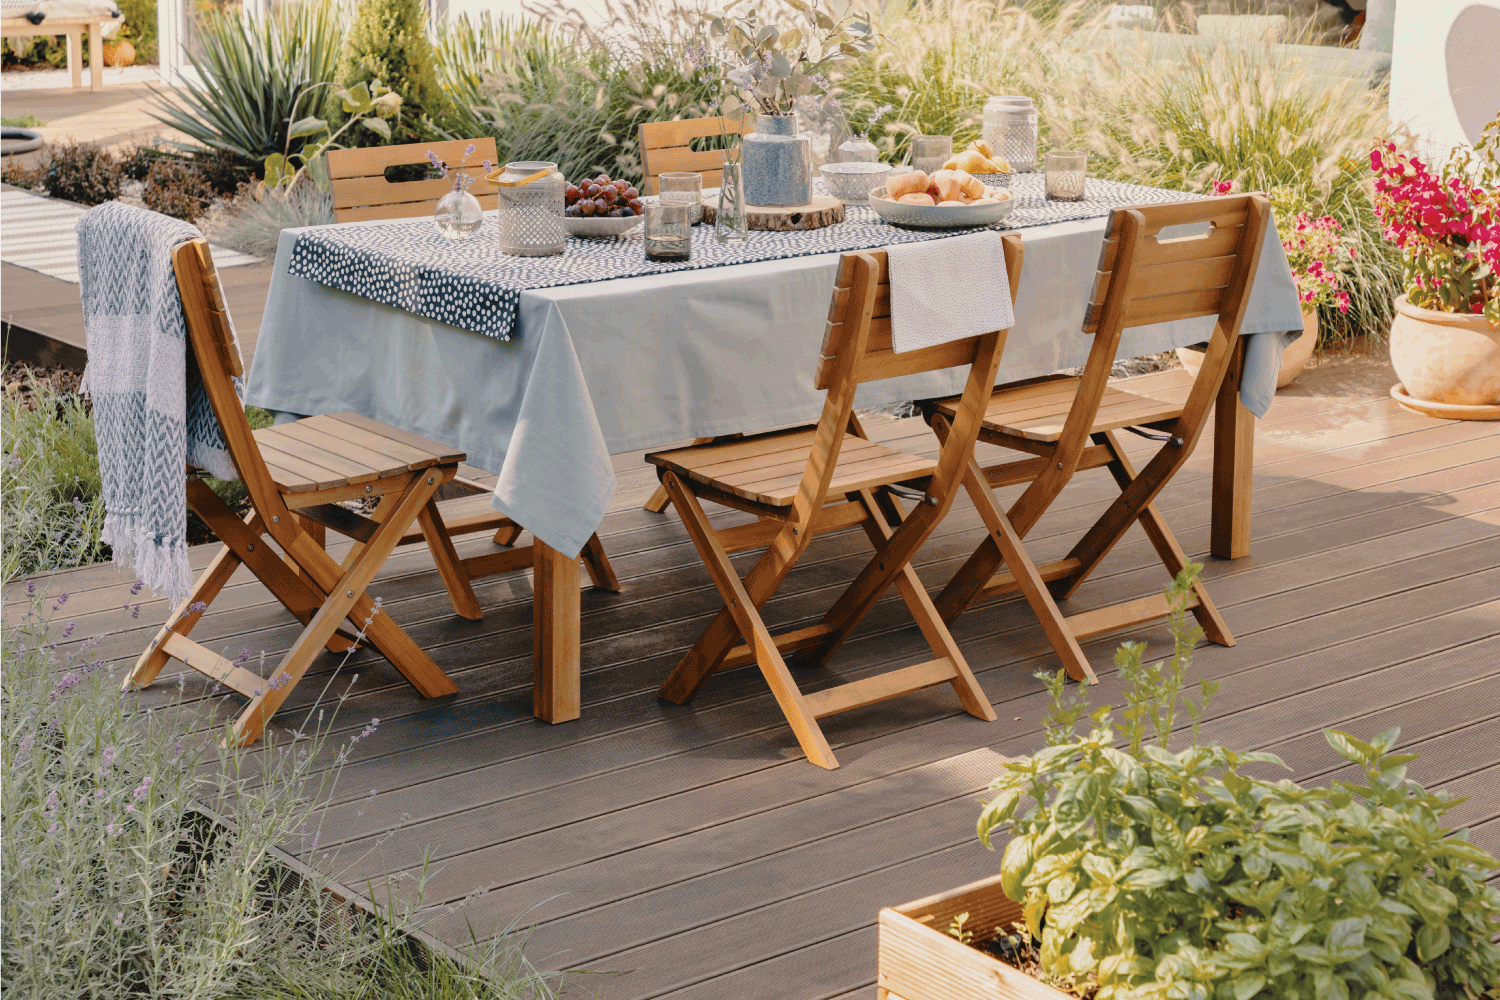 dining table with wooden chairs set on the terrace with tablecloth